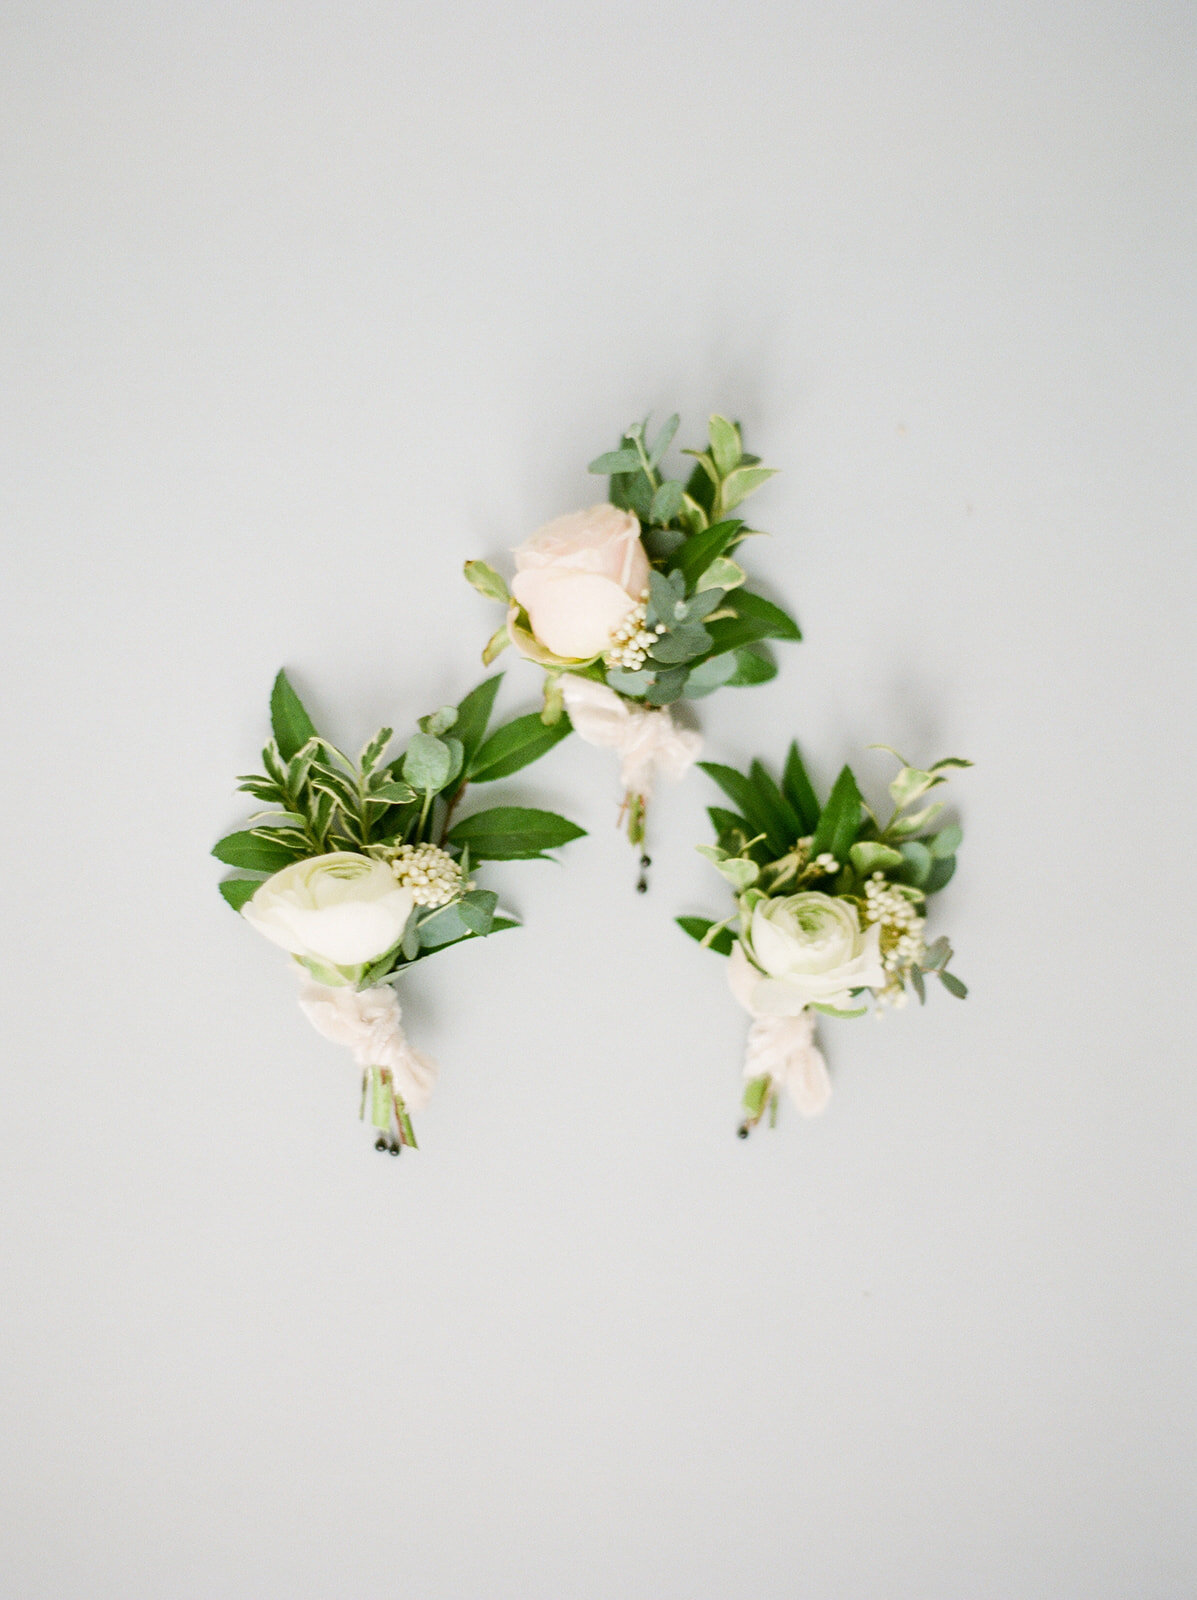 Blush and ivory boutonnieres with textures and natural greenery. Nashville wedding florist.